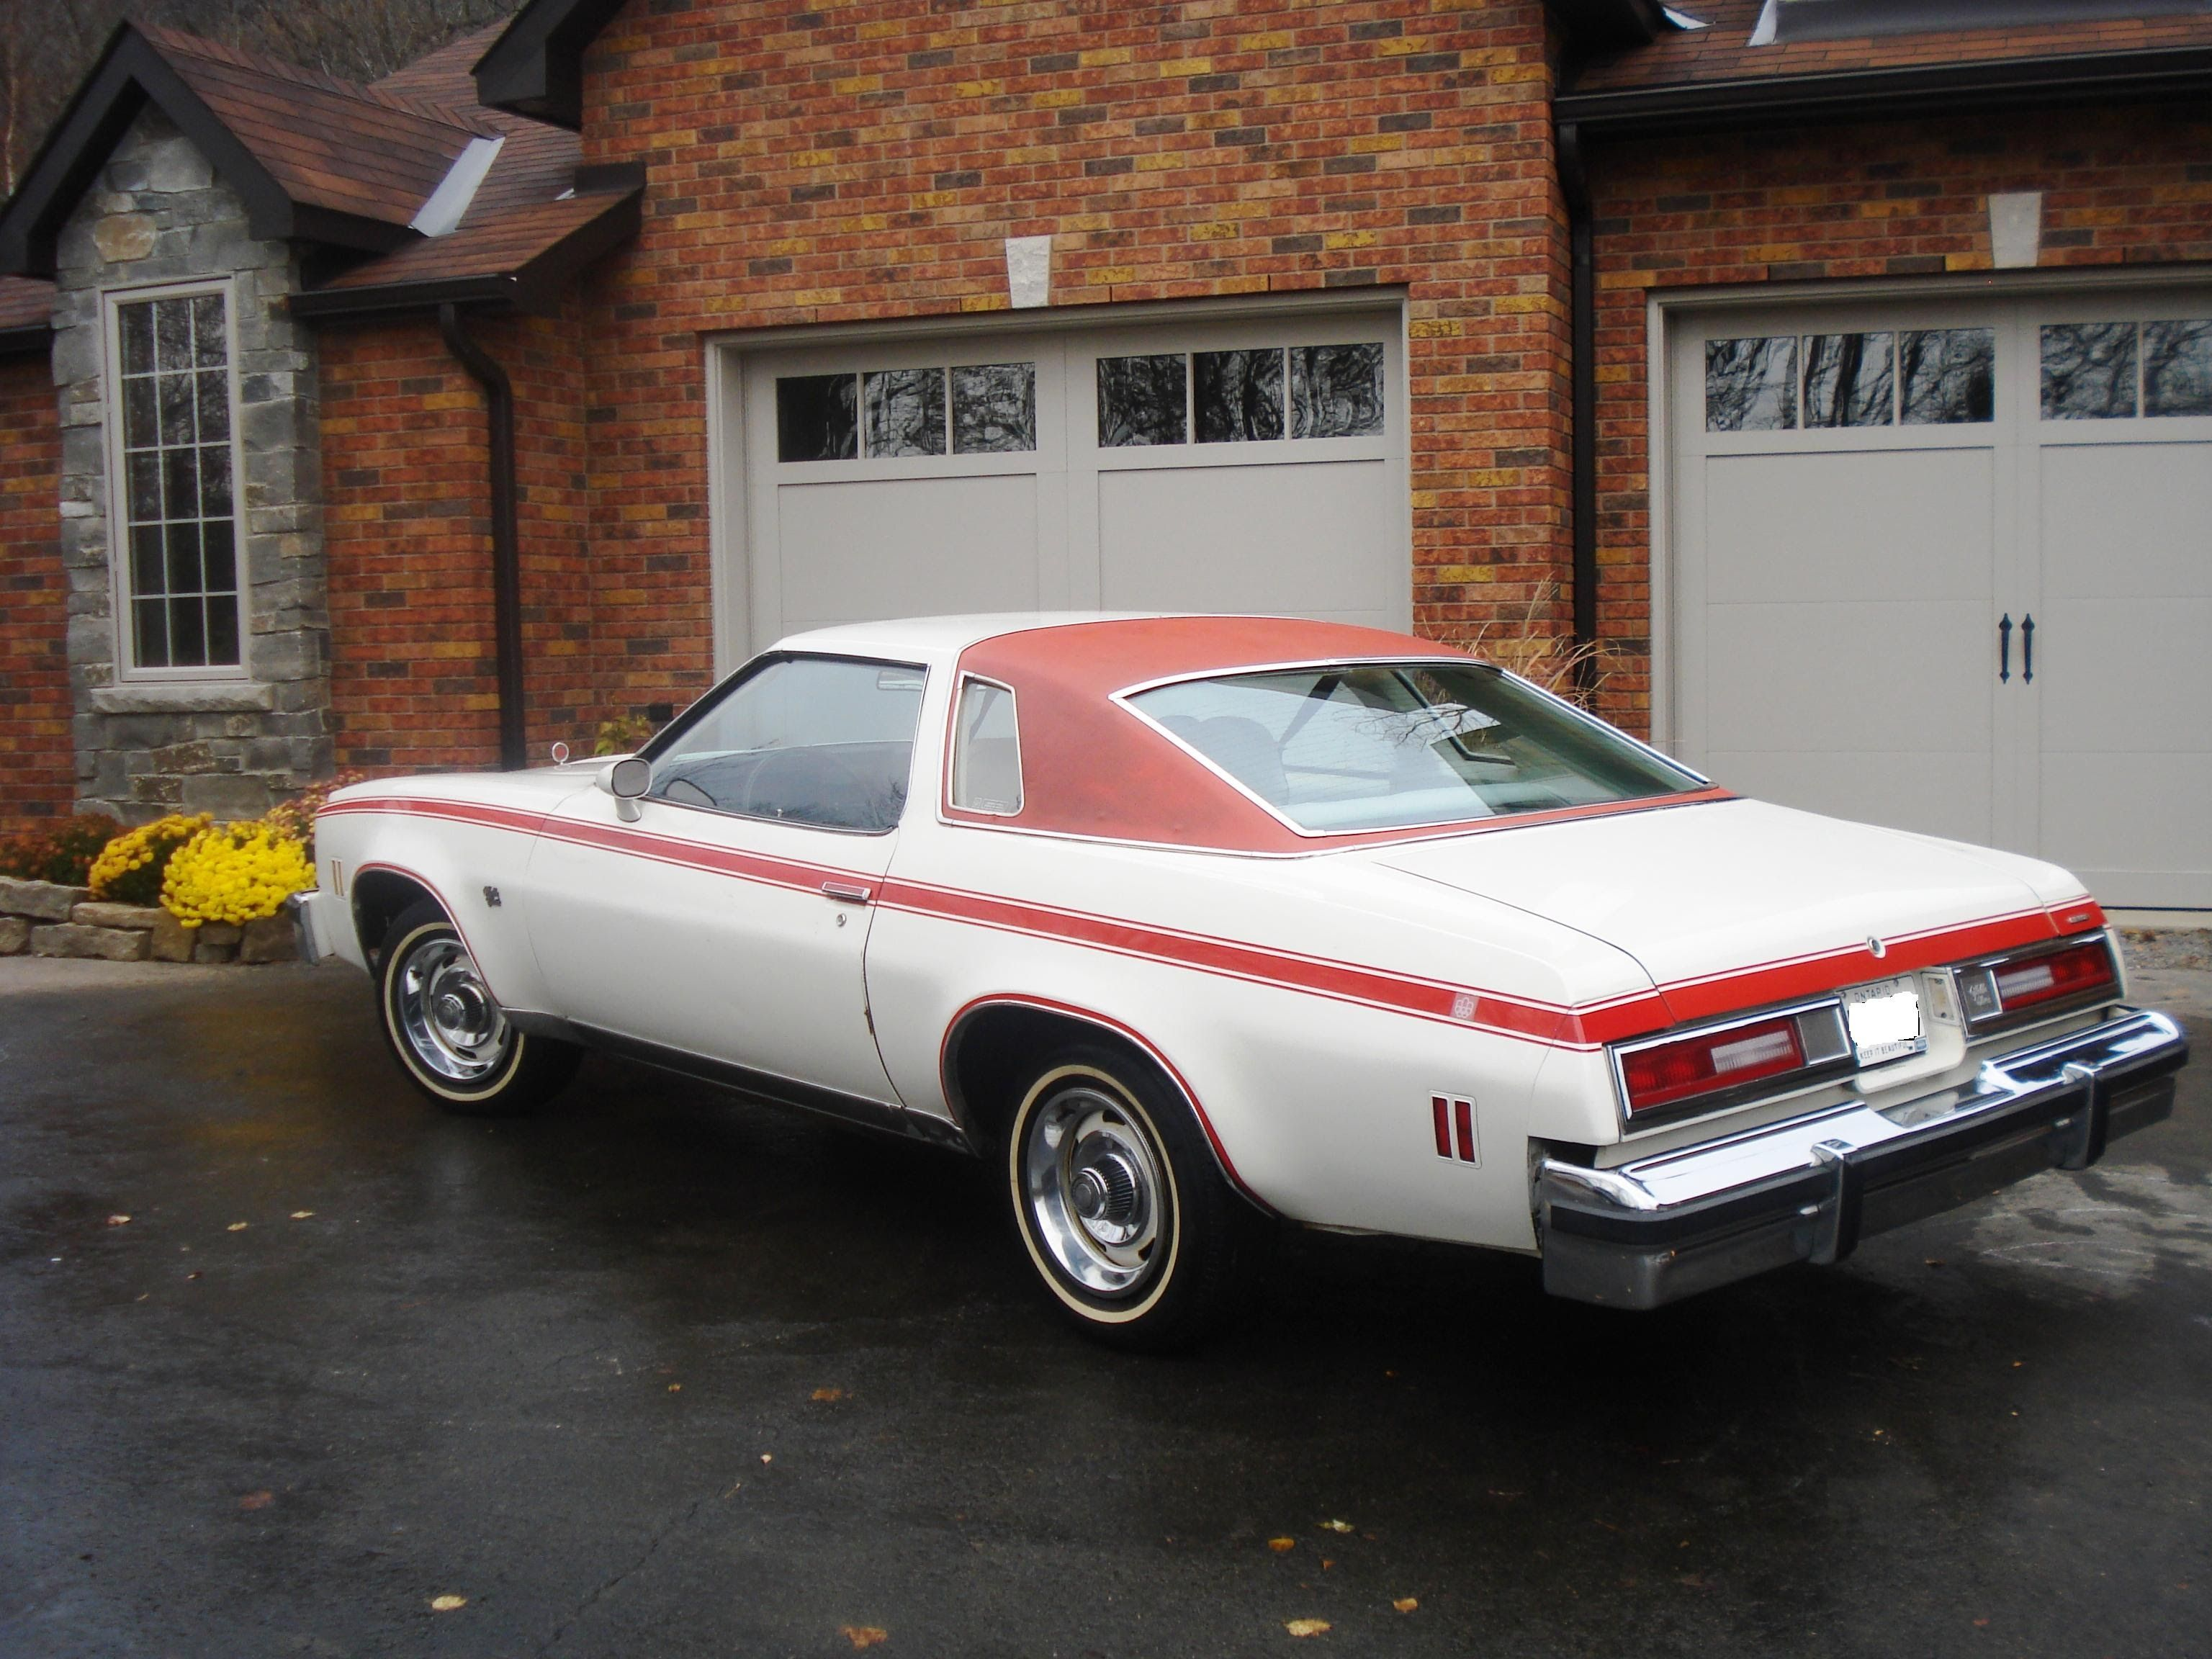 Canada cup edition 75 lemans and my 76 Olympic chevelle 8e3ac29b11498cbe2d131a8acc0835ed